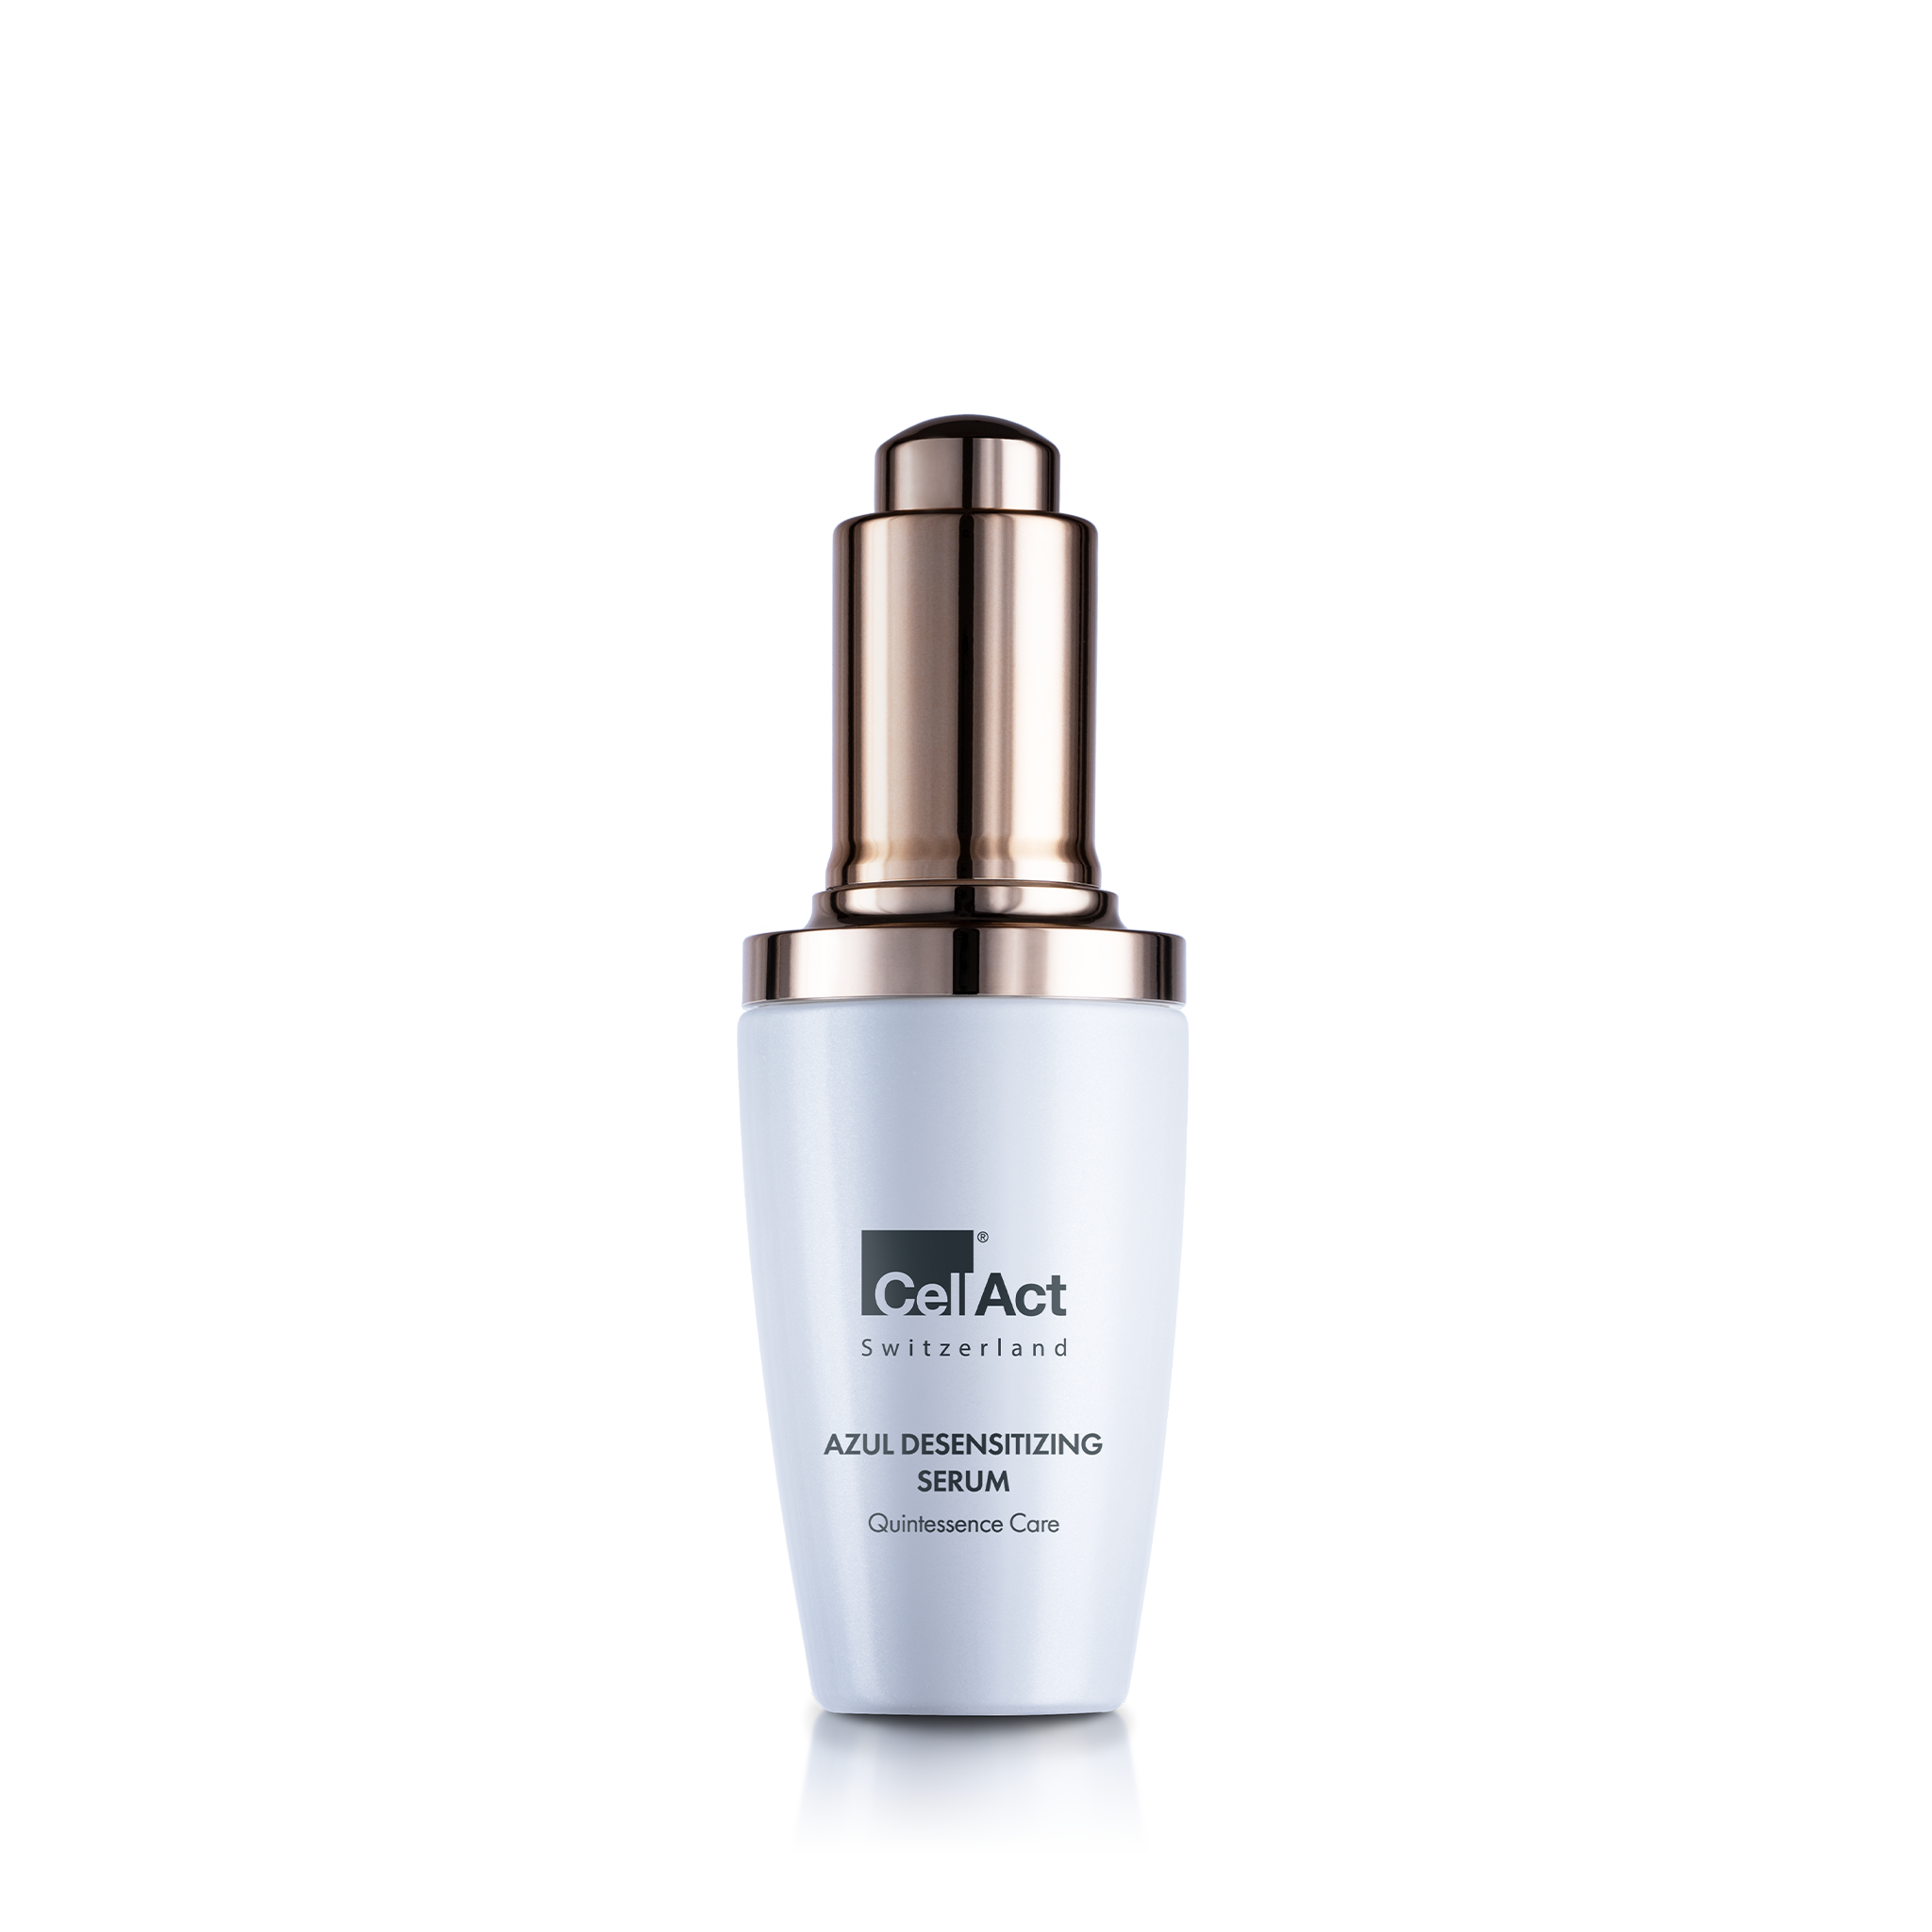 Azul Desensitizing Serum